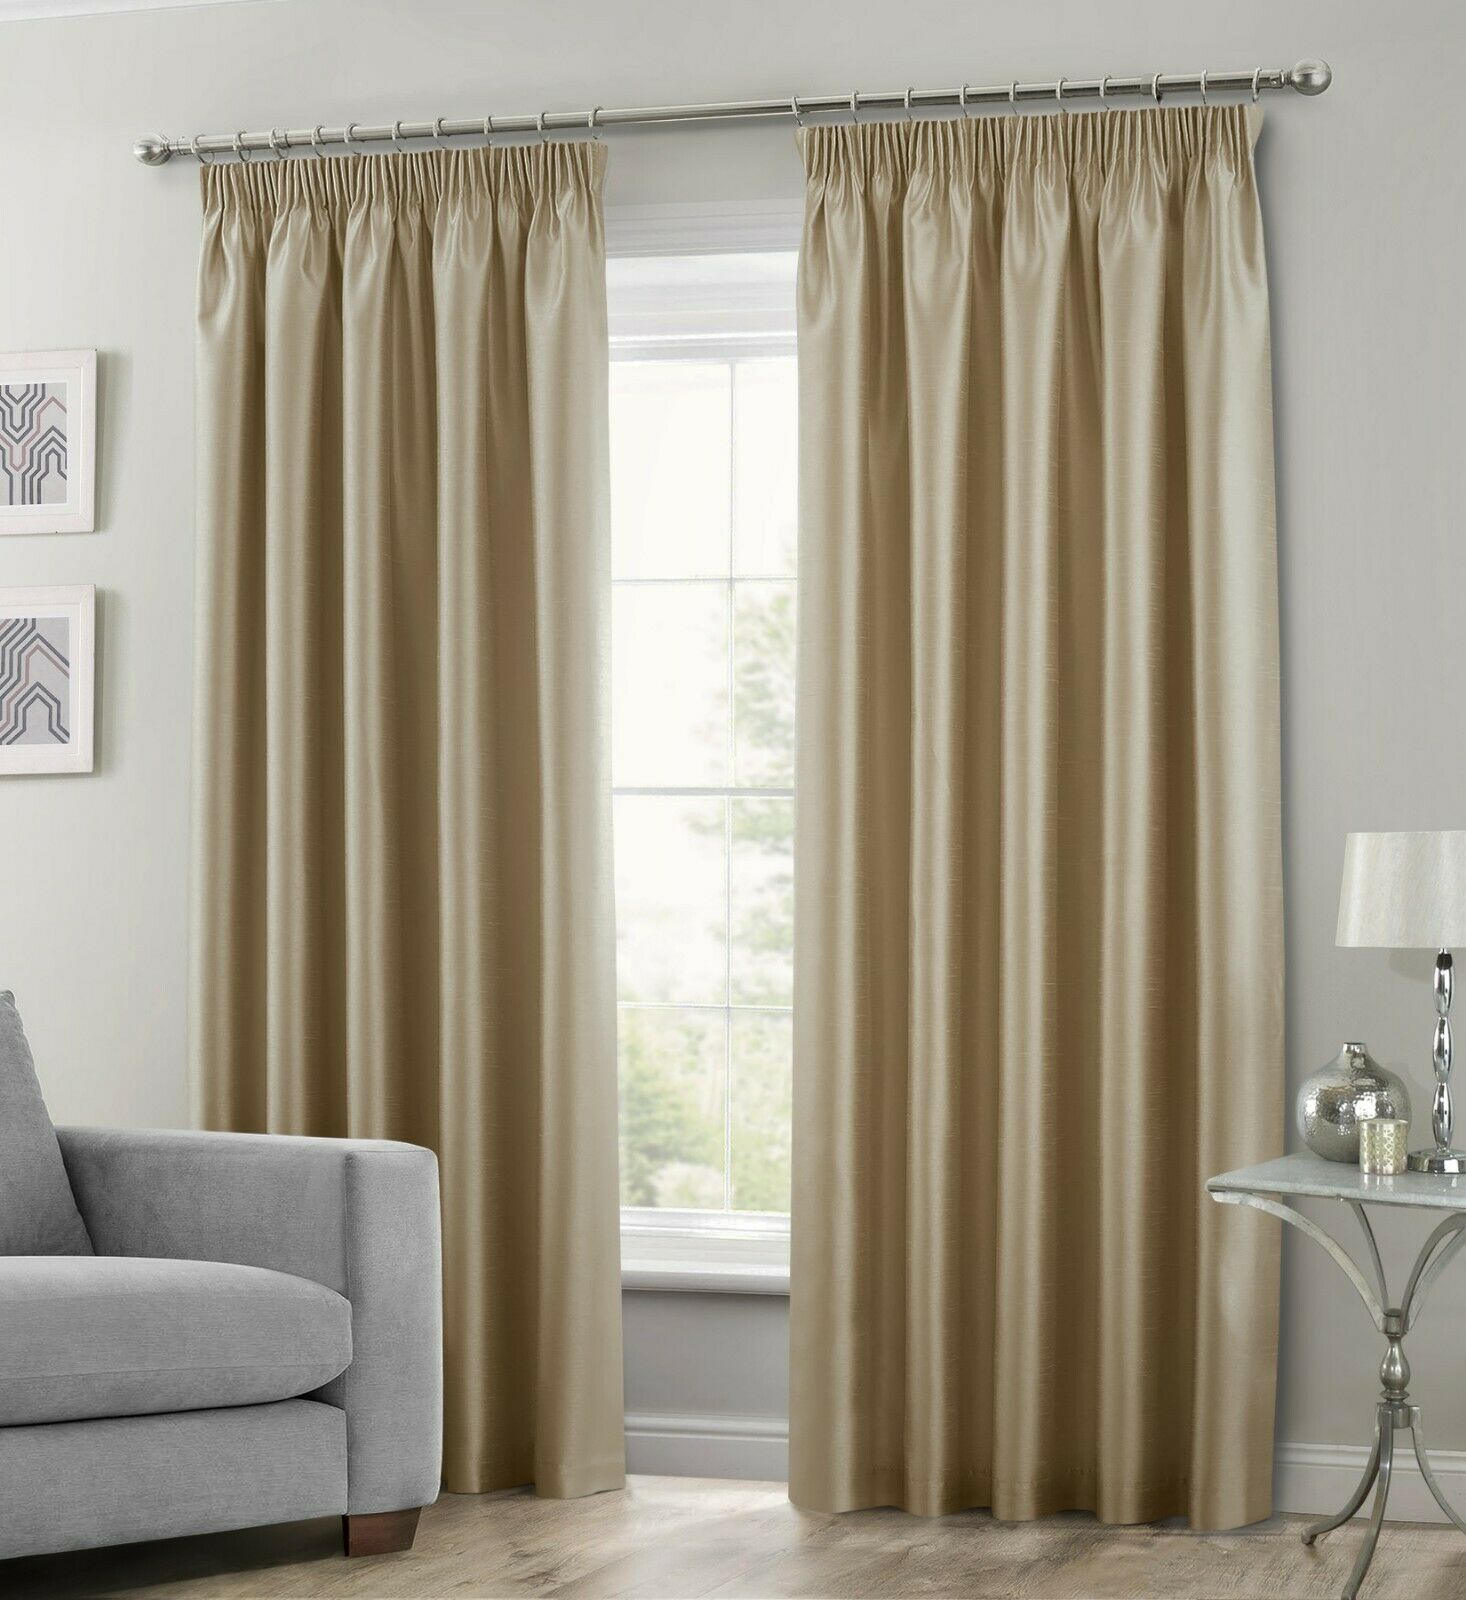 LATTE BEIGE COLOUR STYLISH FAUX SILK FULLY LINED PAIR OF CURTAINS